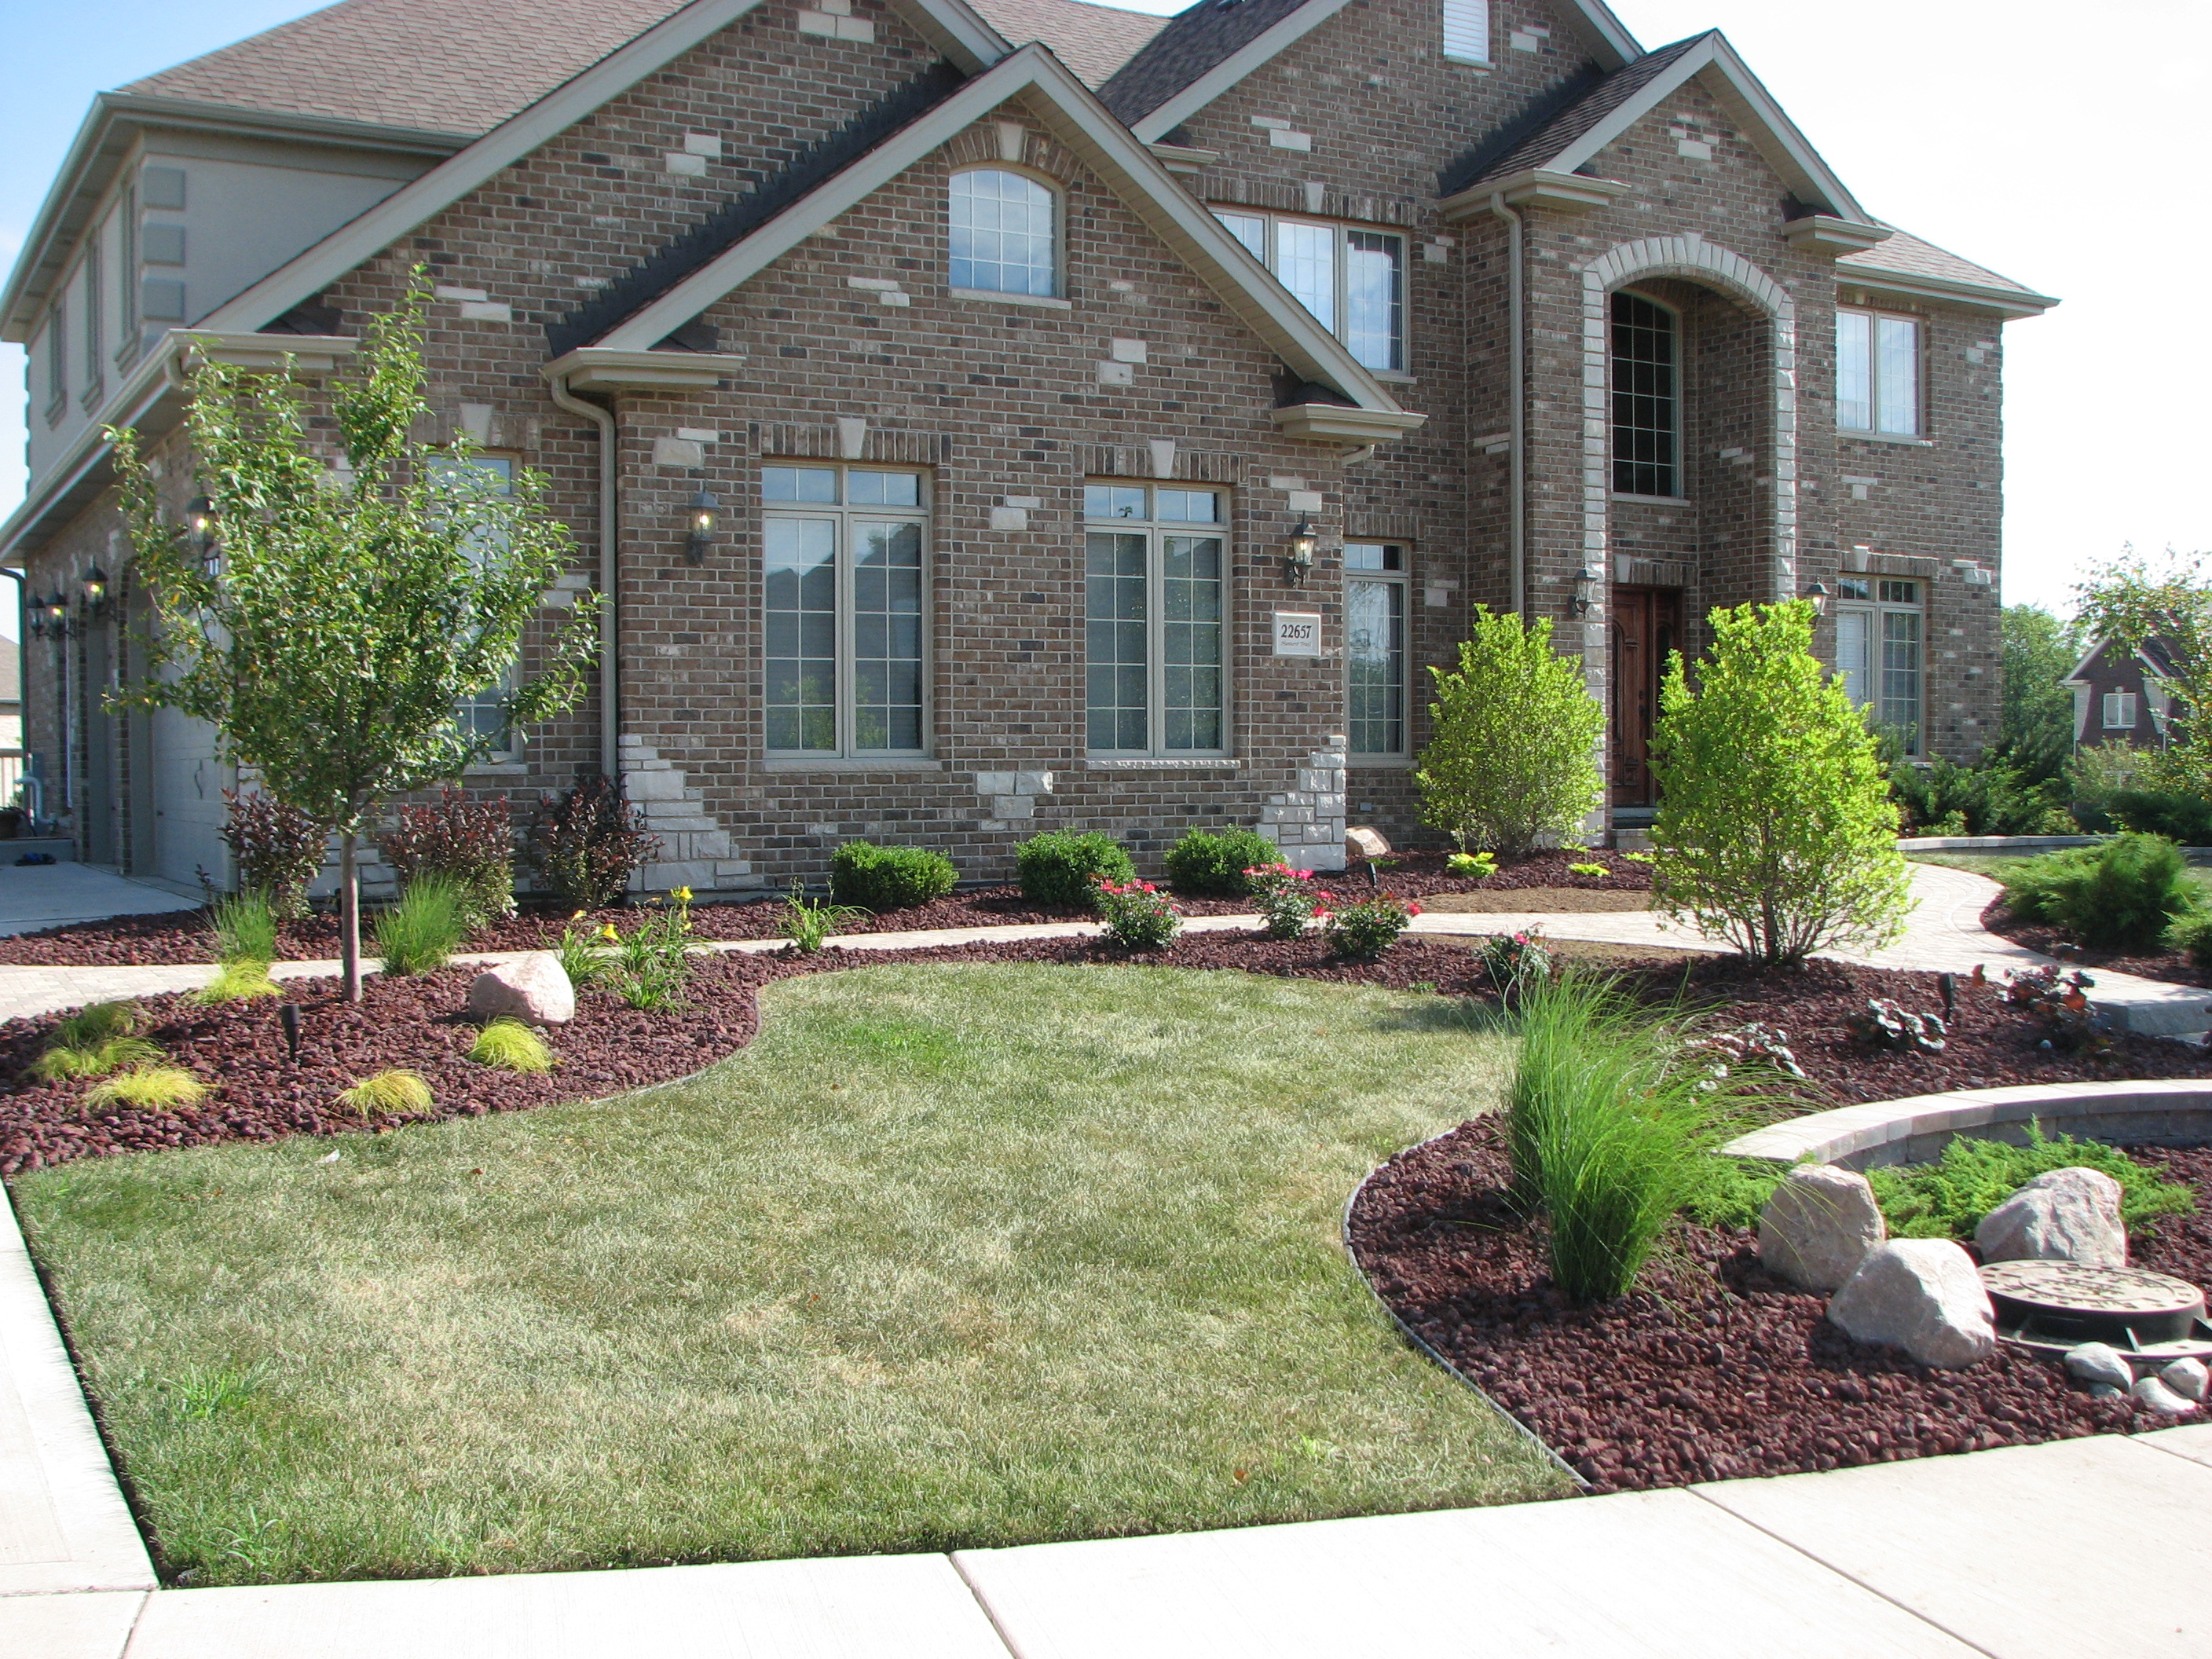 house-landscape-winsome-home-landscaping-adelaide-home-landscaping-water-drainage-home-landscaping-without-grass-home-landscaping-with-rocks-home-landscaping-woodridge-home-landscaping-w